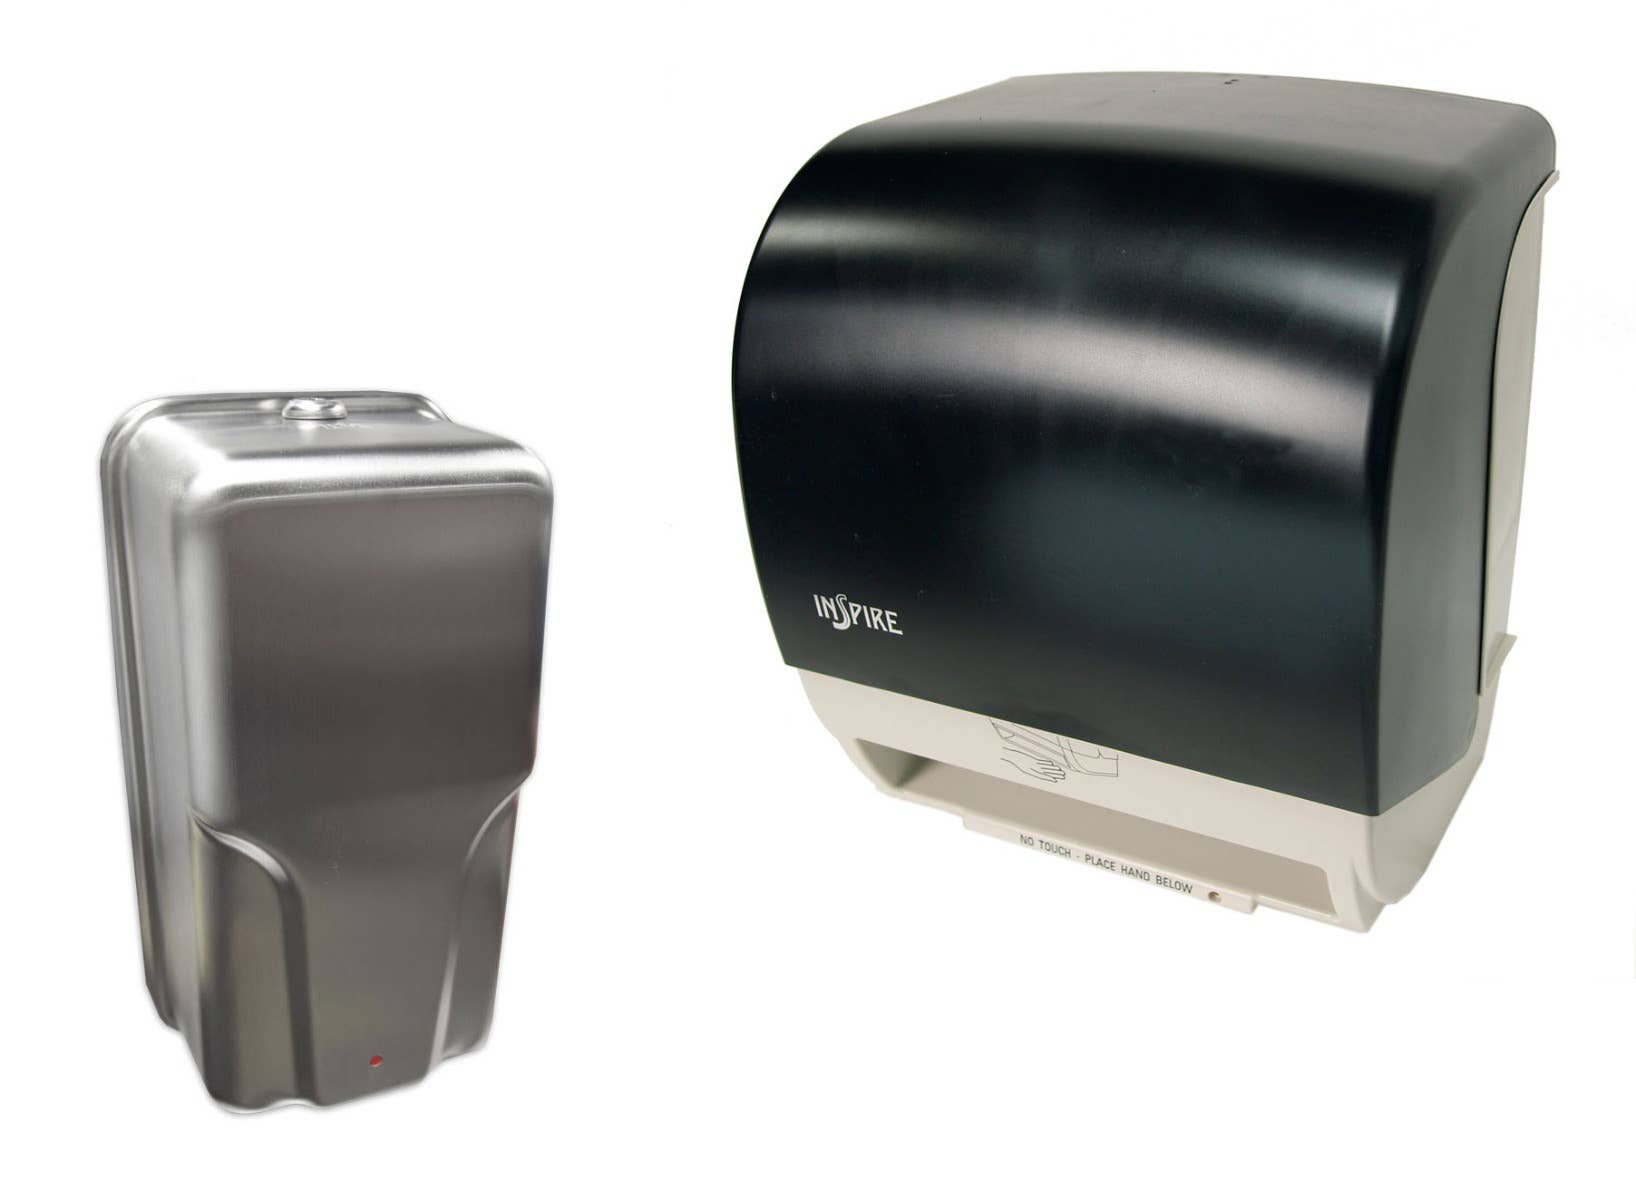 Hands-Free No-Touch Restroom Dispensers for Soap & Paper Towels